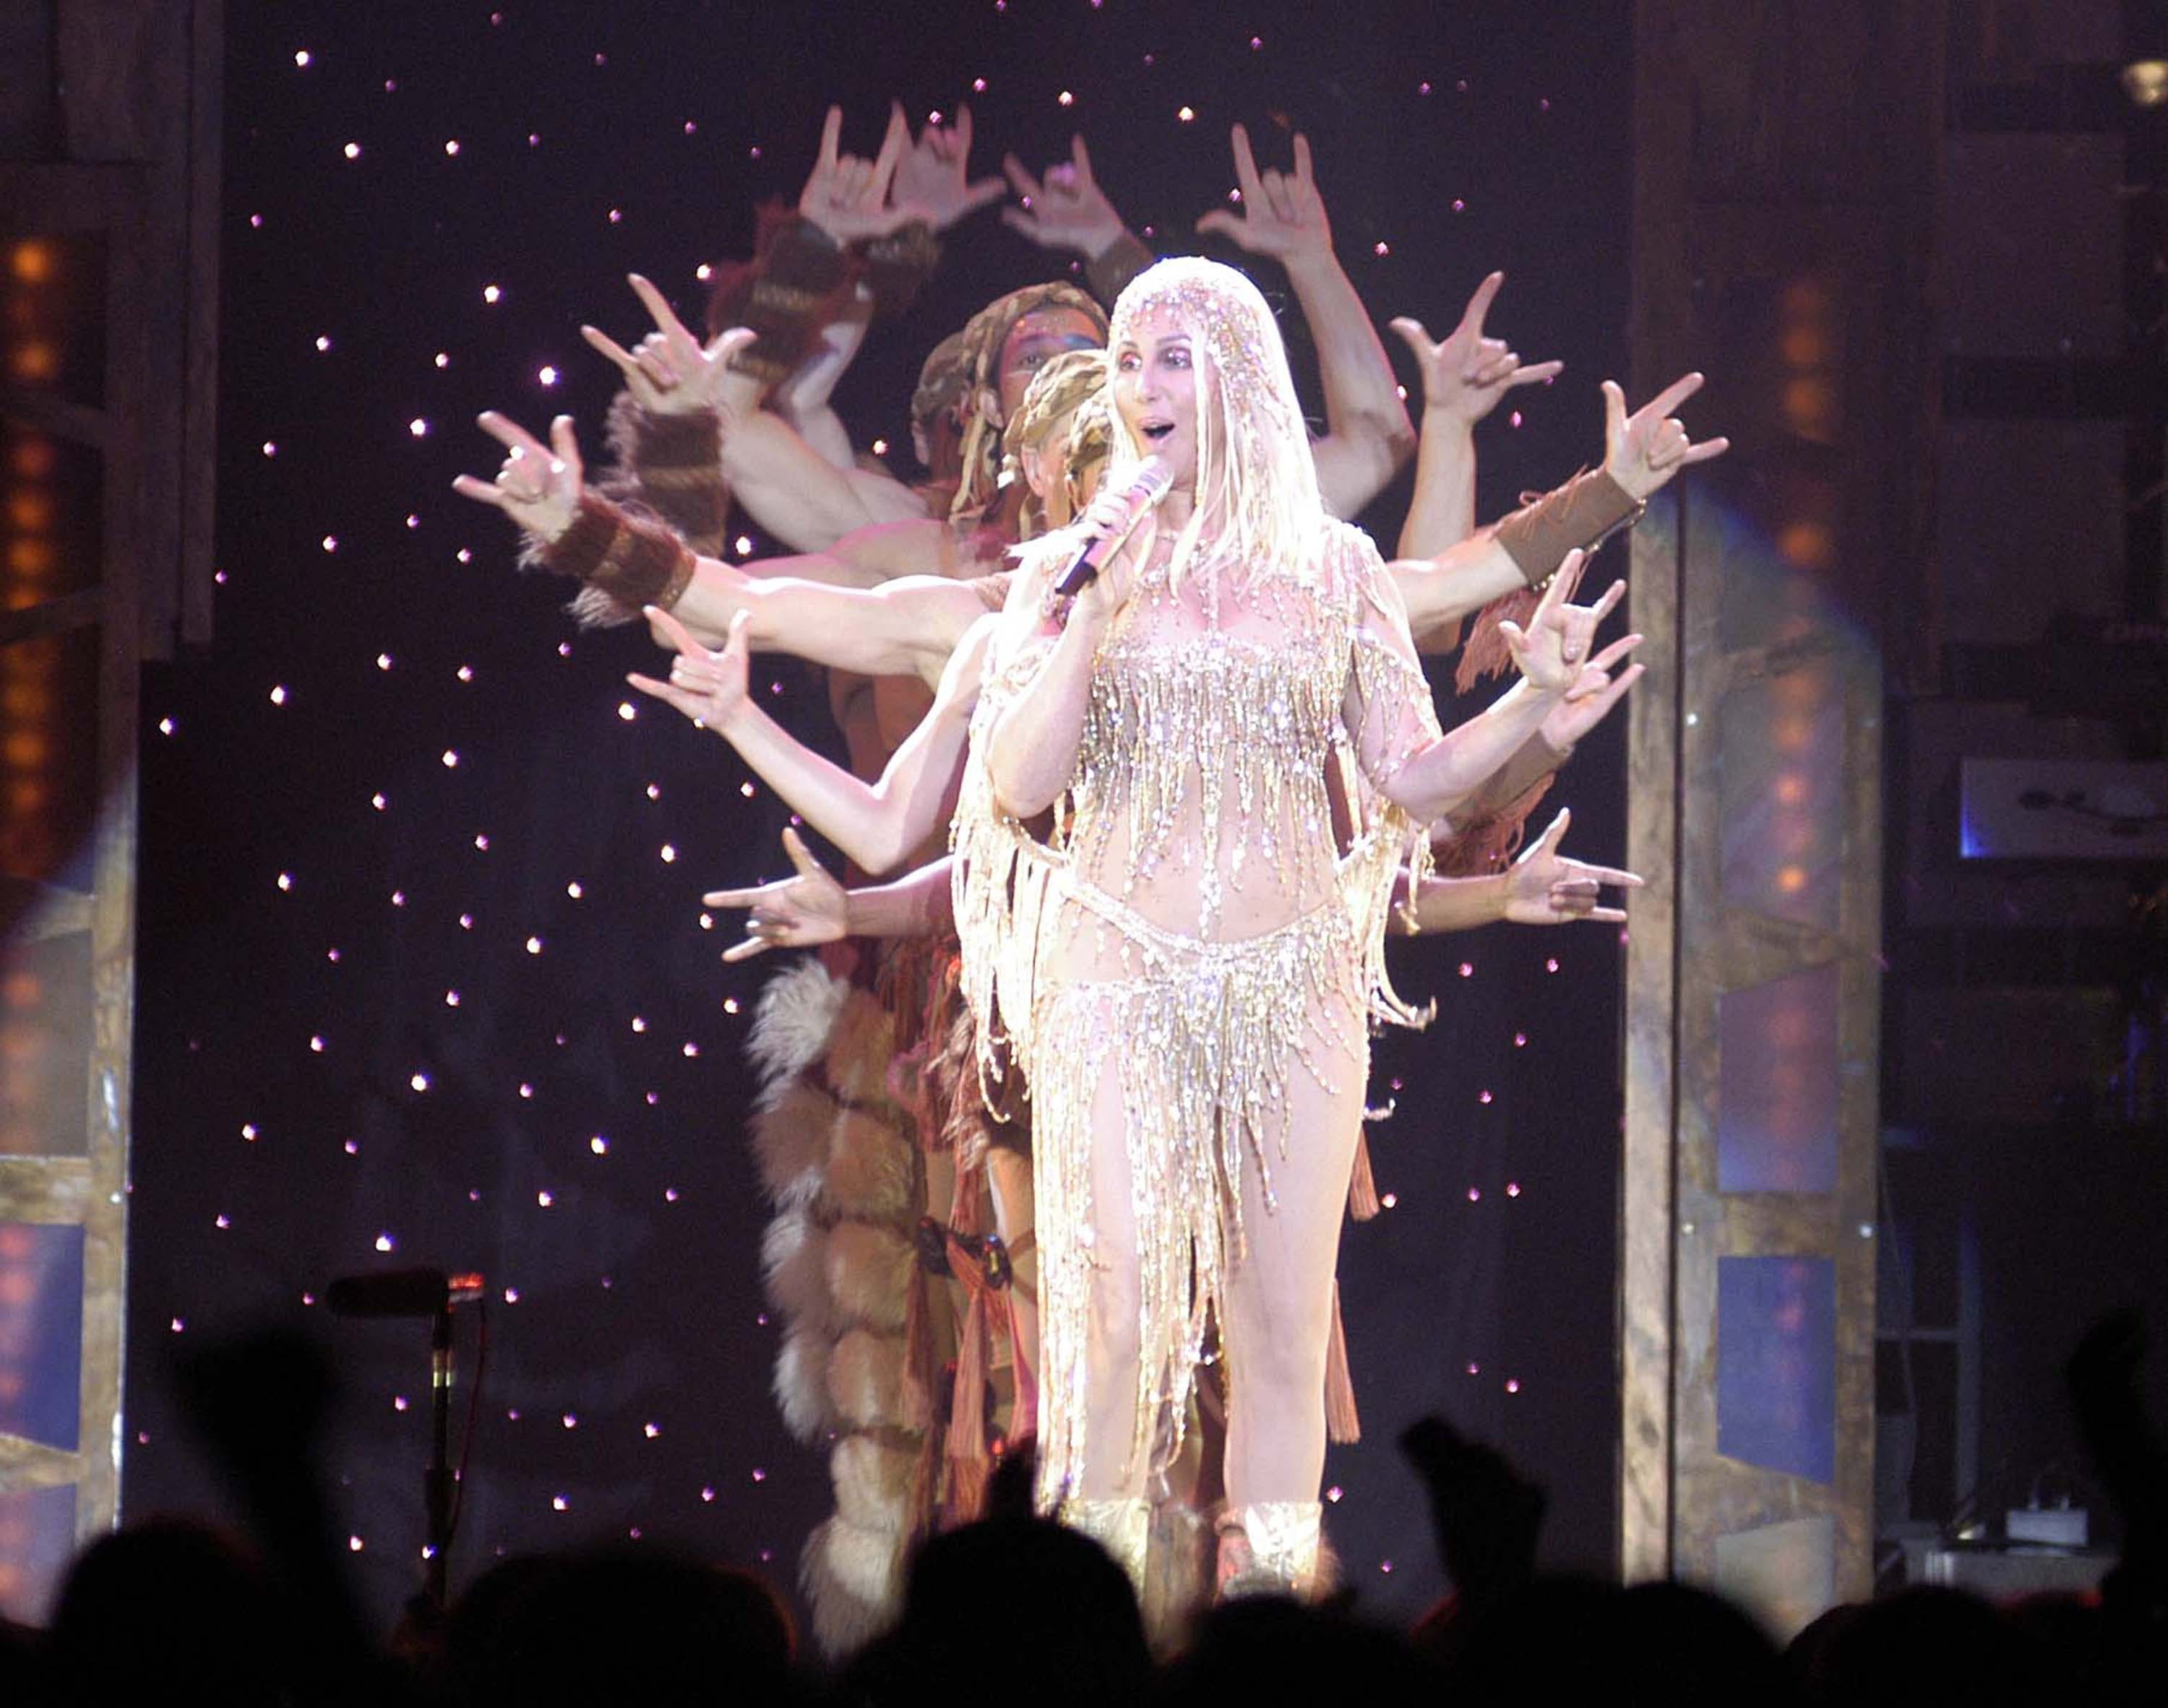 cher performing on stage